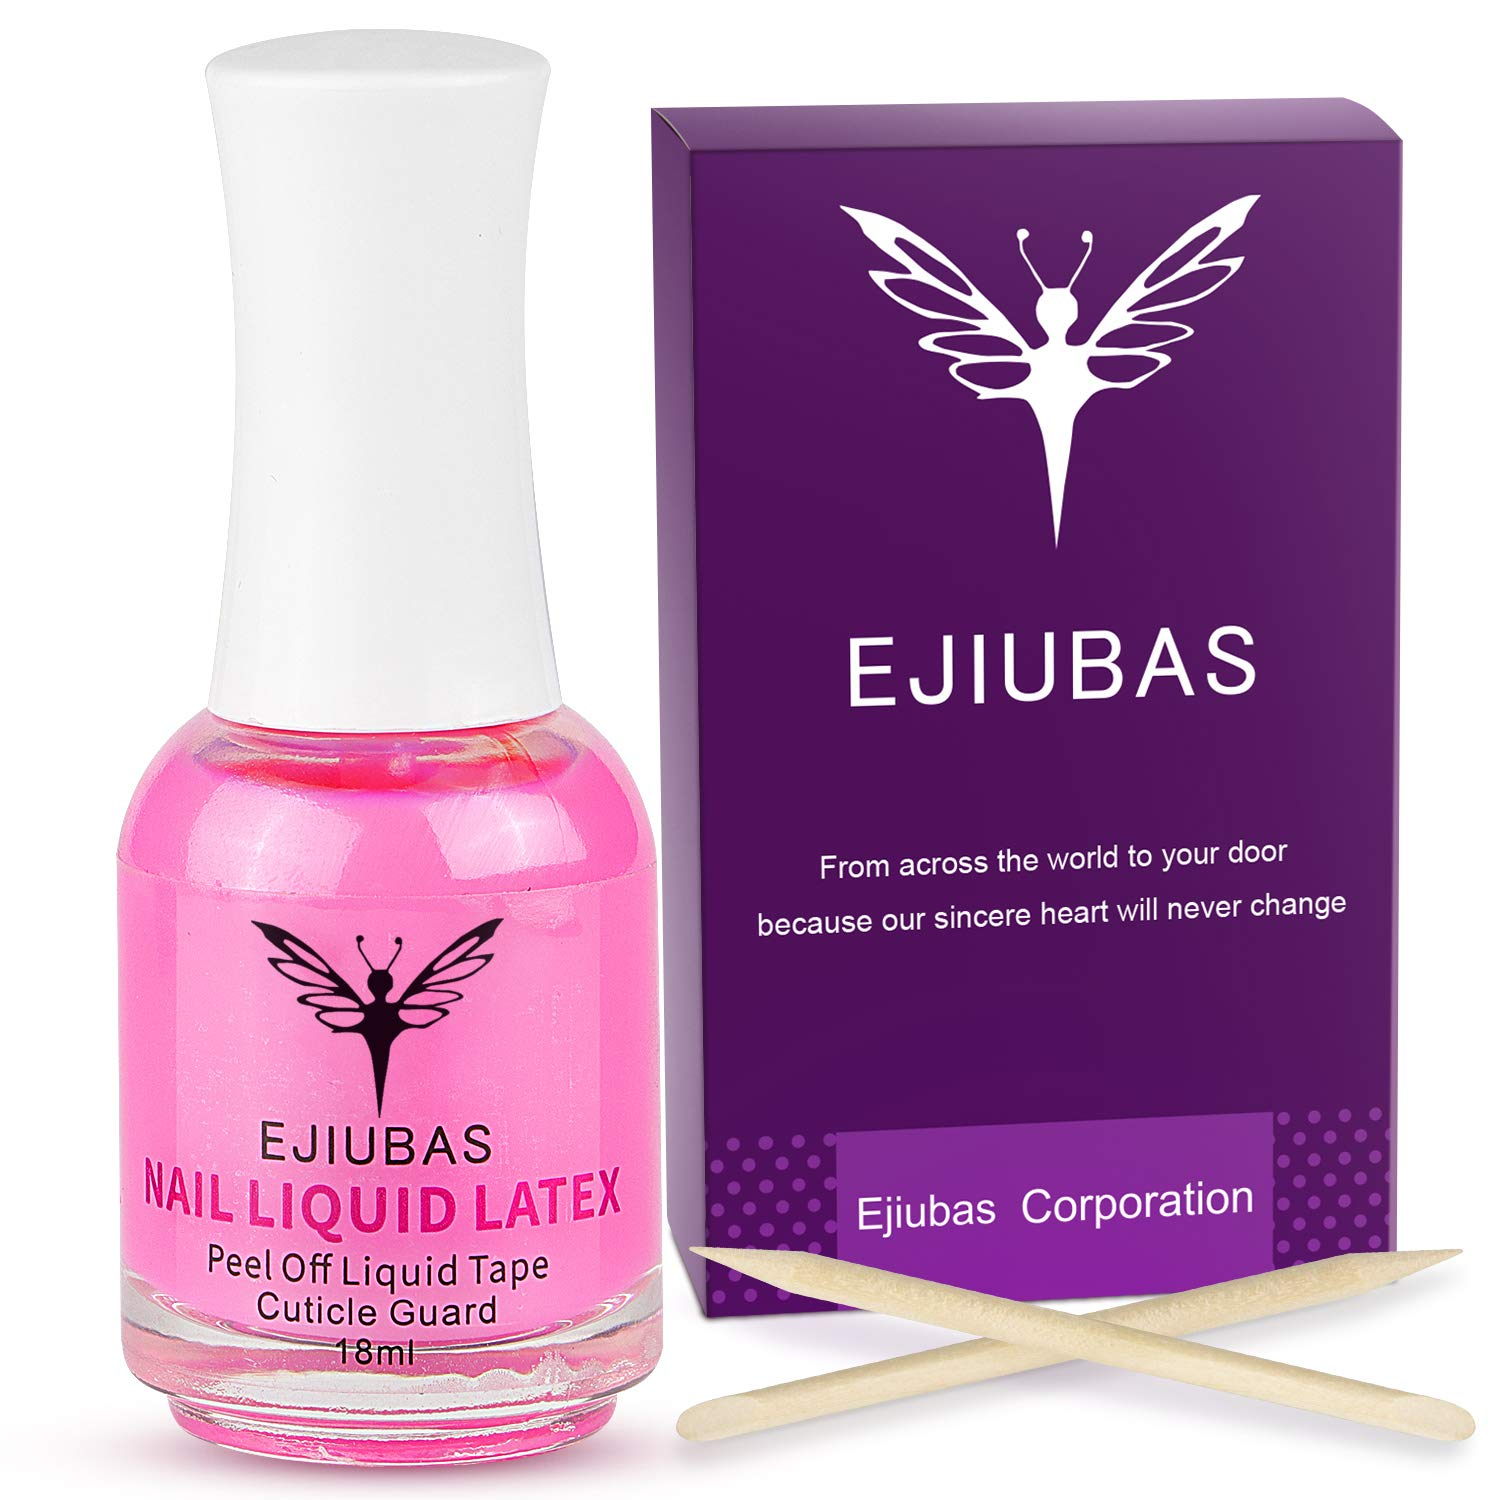 Liquid Latex for Nails 18ml Ejiubas Latex Tape Peel Off Cuticle Guard Skin Barrier Protector